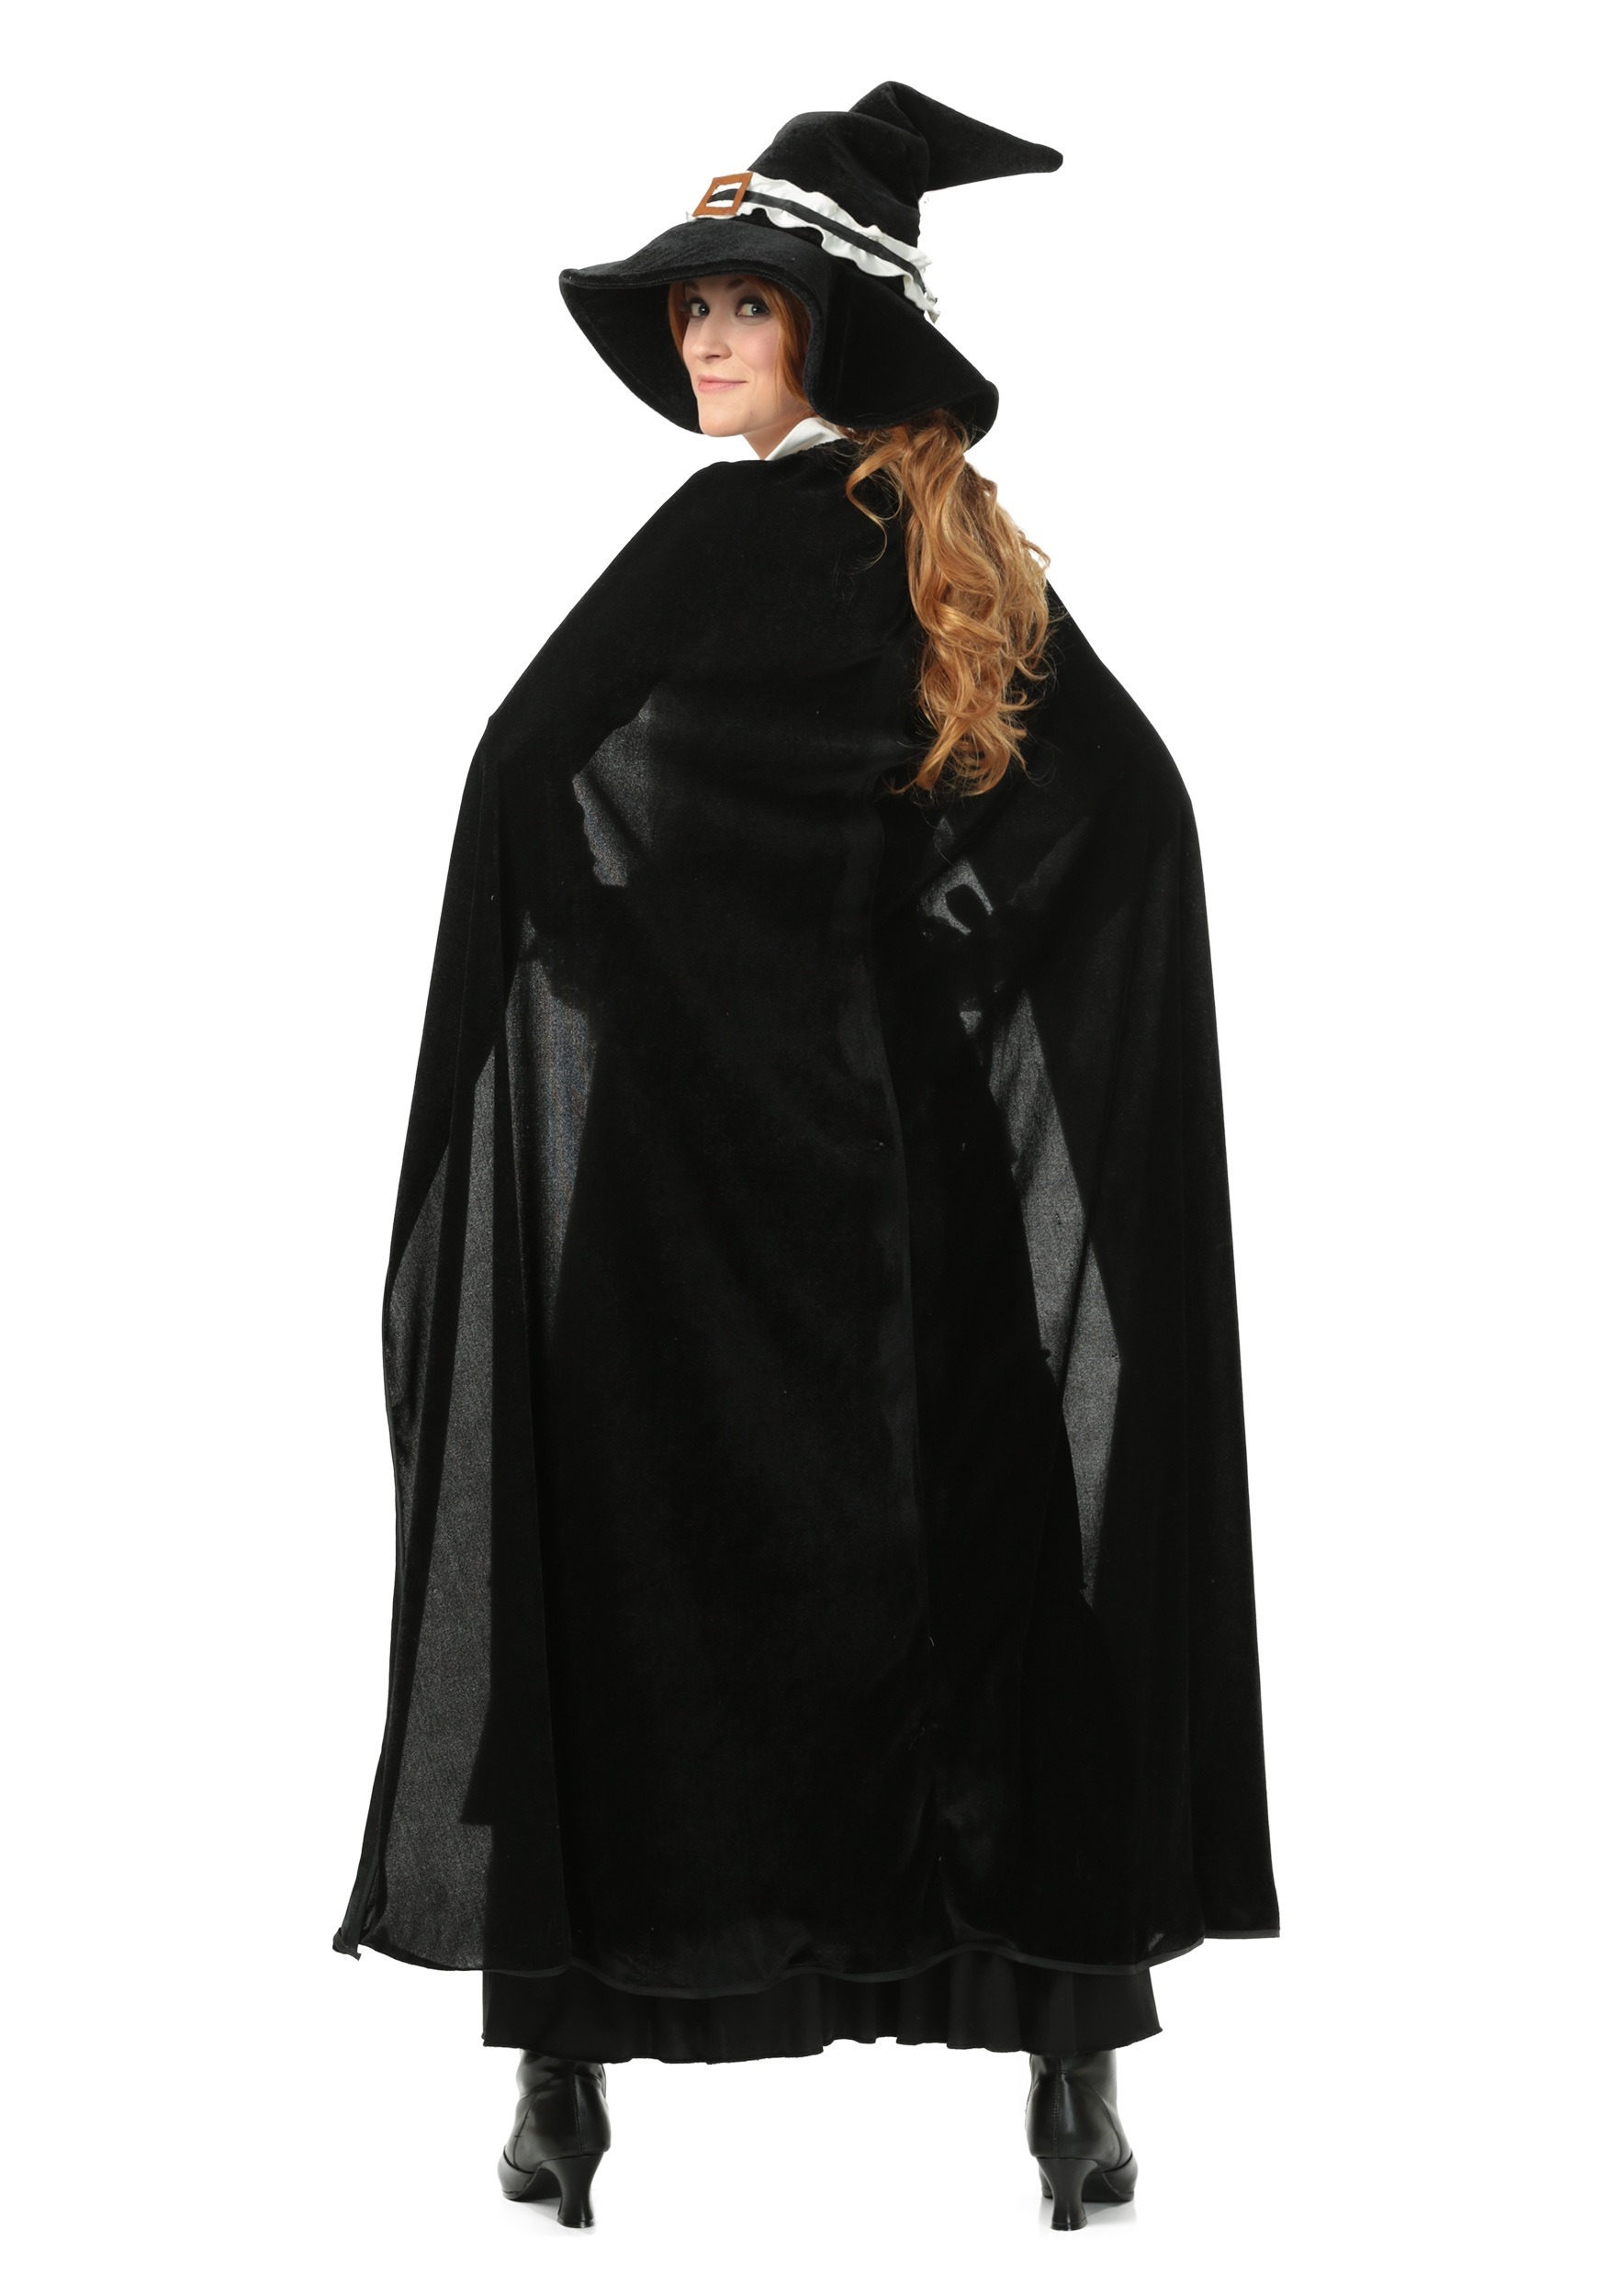 Plus Size Wicked Queen Costume |Plus Size Halloween Costumes Witch